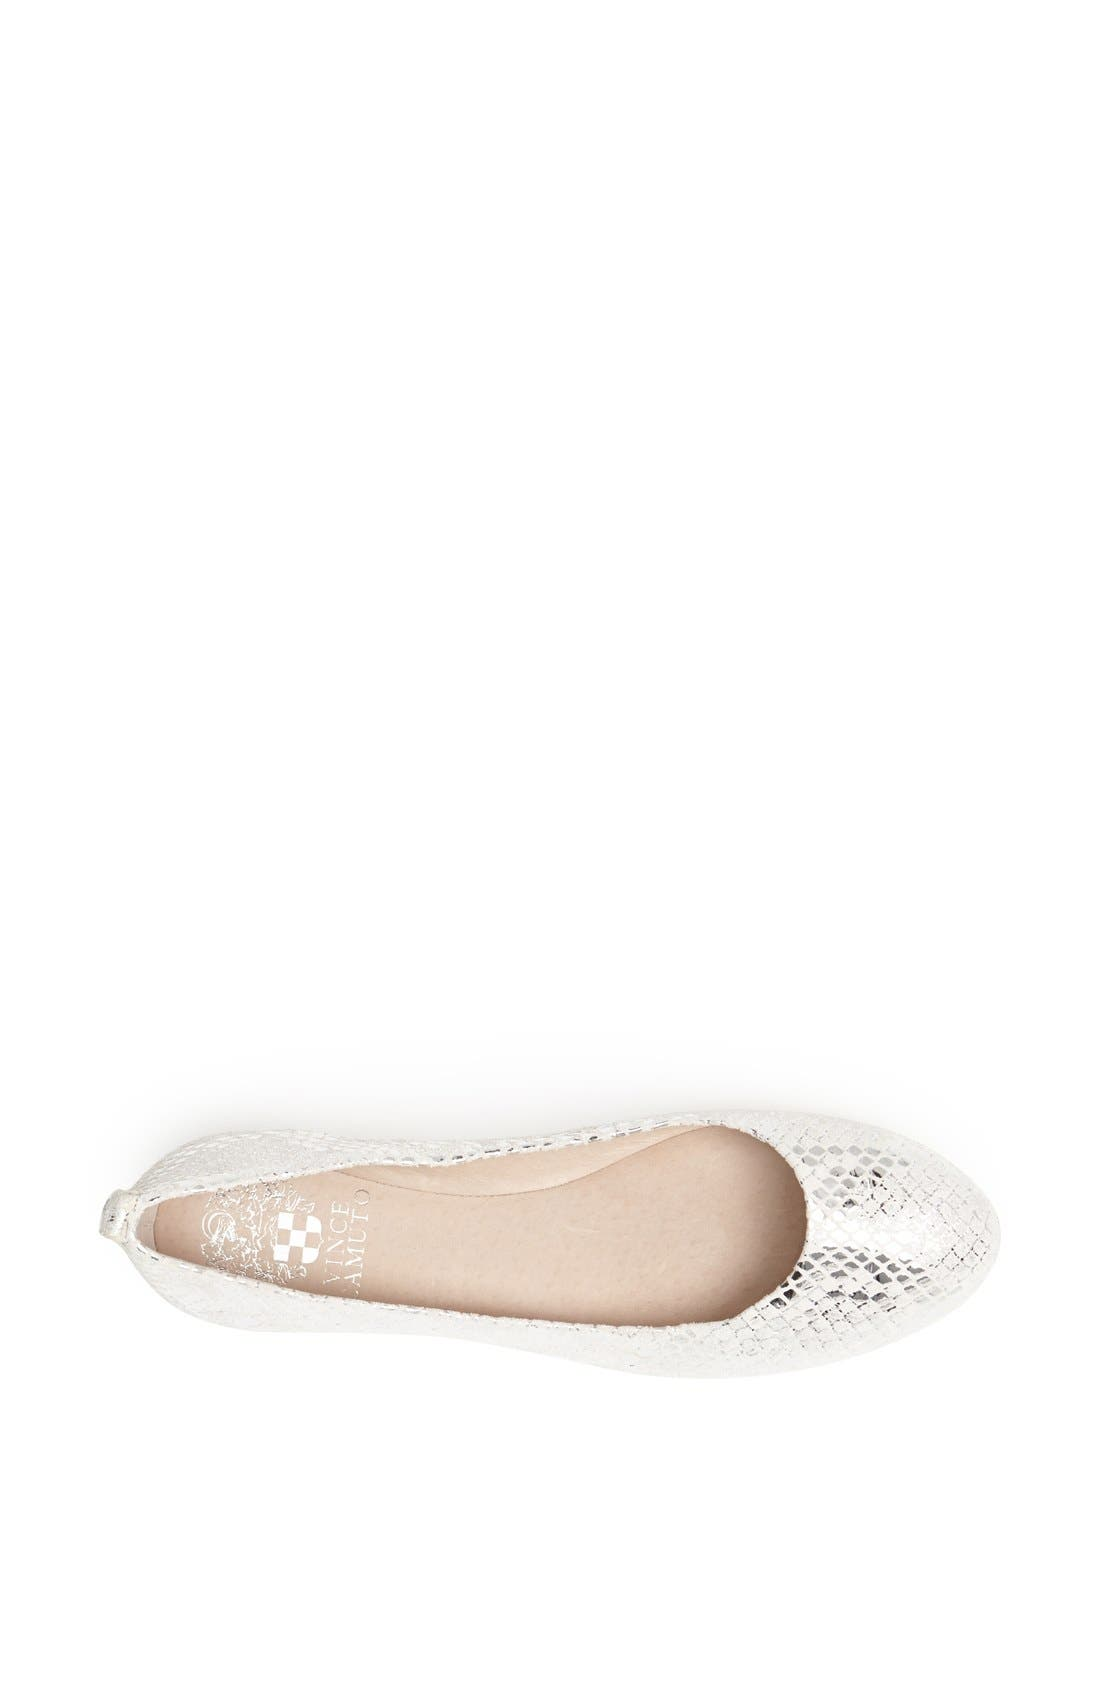 Alternate Image 3  - Vince Camuto 'Benningly' Snake Embossed Metallic Leather Ballet Flat